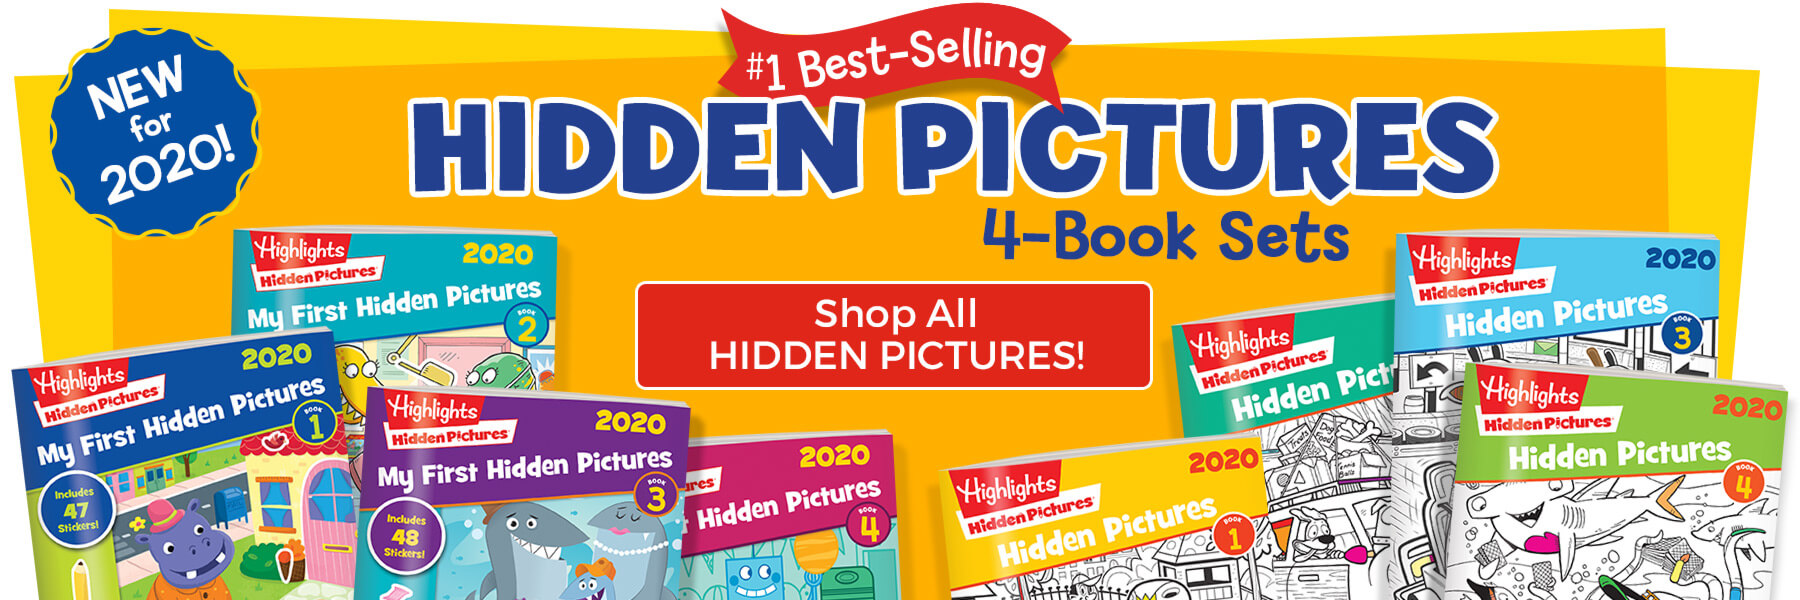 Get the #1 best-selling Hidden Pictures 4-book sets — new for 2020